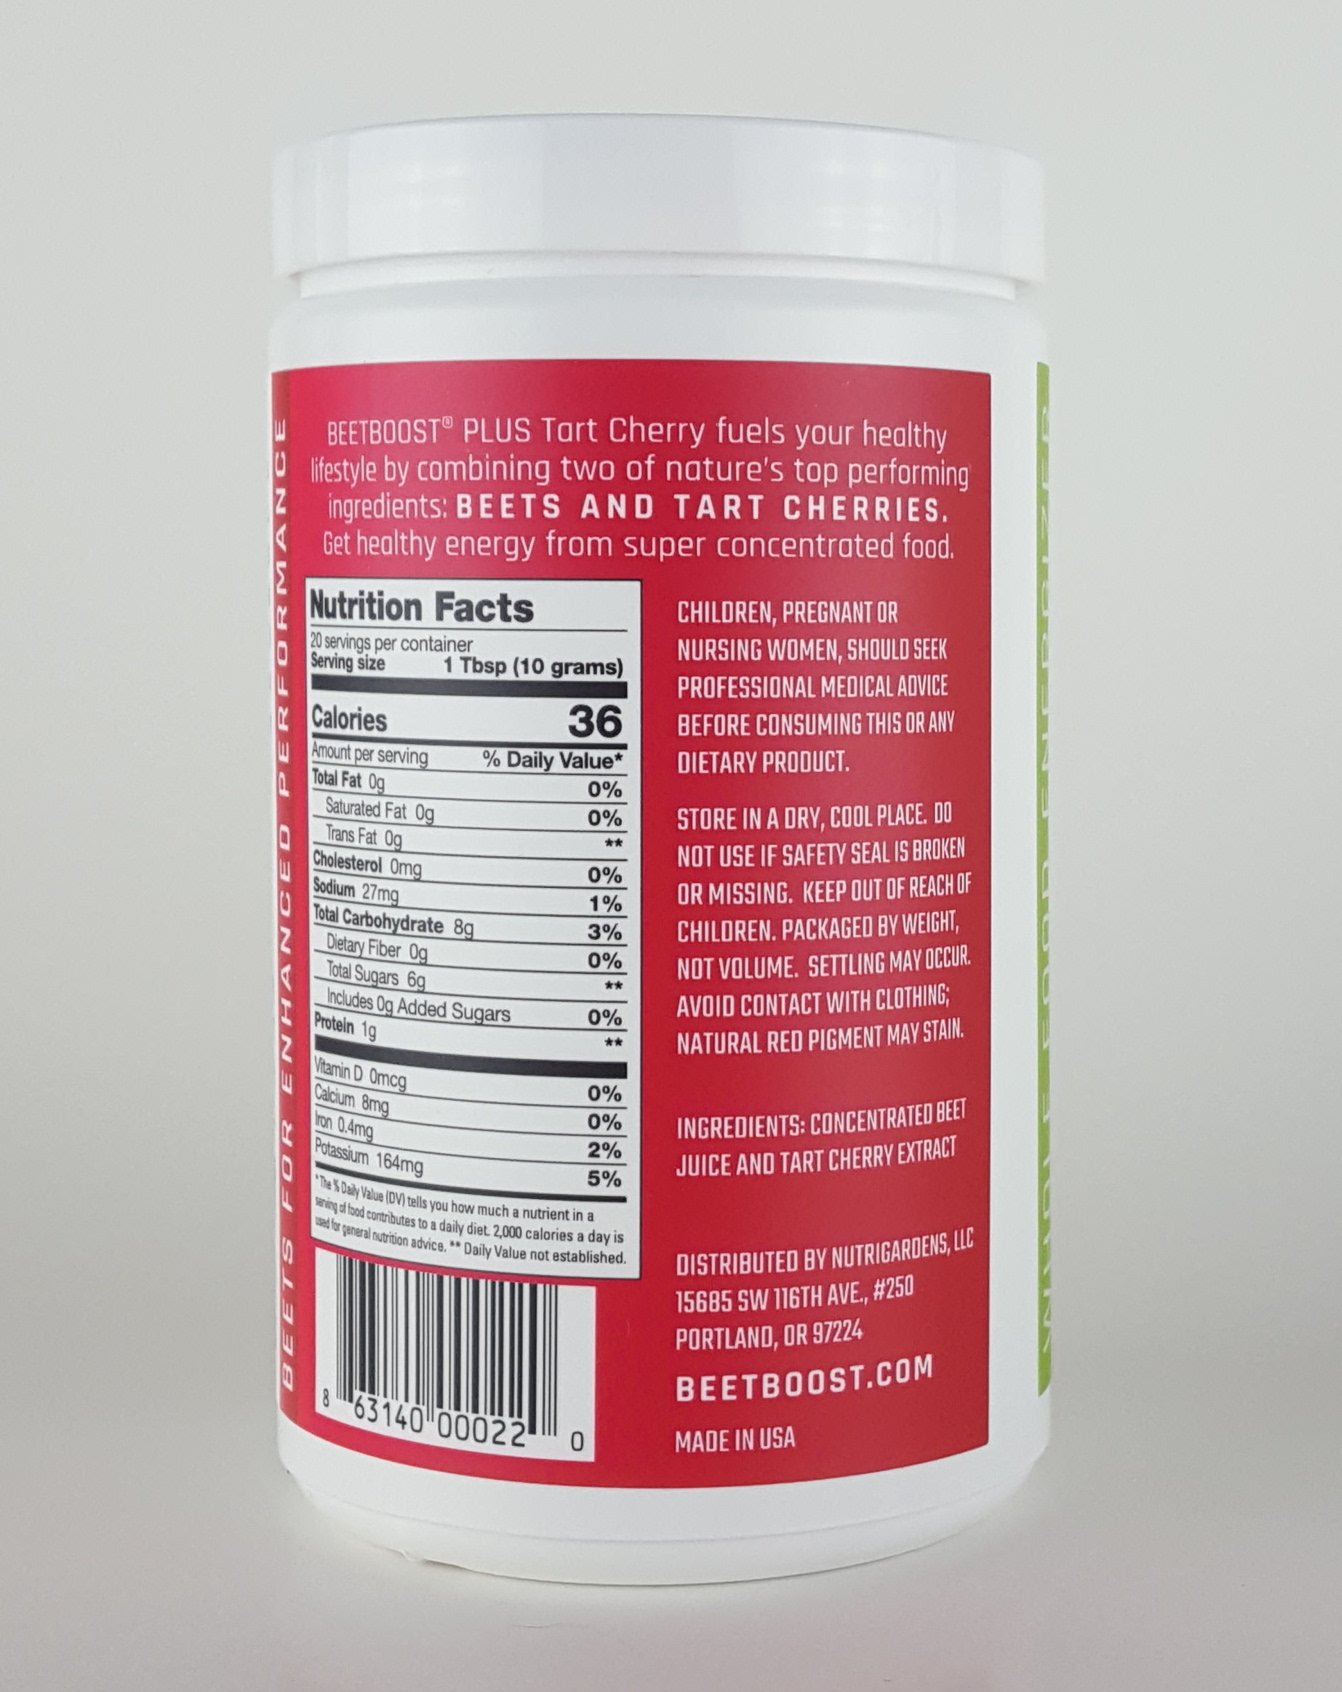 BEET BOOST® for Stamina by NutriGardens - Increase Endurance & Circulation – Concentrated Beets Blended with Tart Cherry for Nitric Oxide BOOST - Reduce Inflammation in Joints & Muscles (7 ounces jar) by Beet Boost (Image #2)